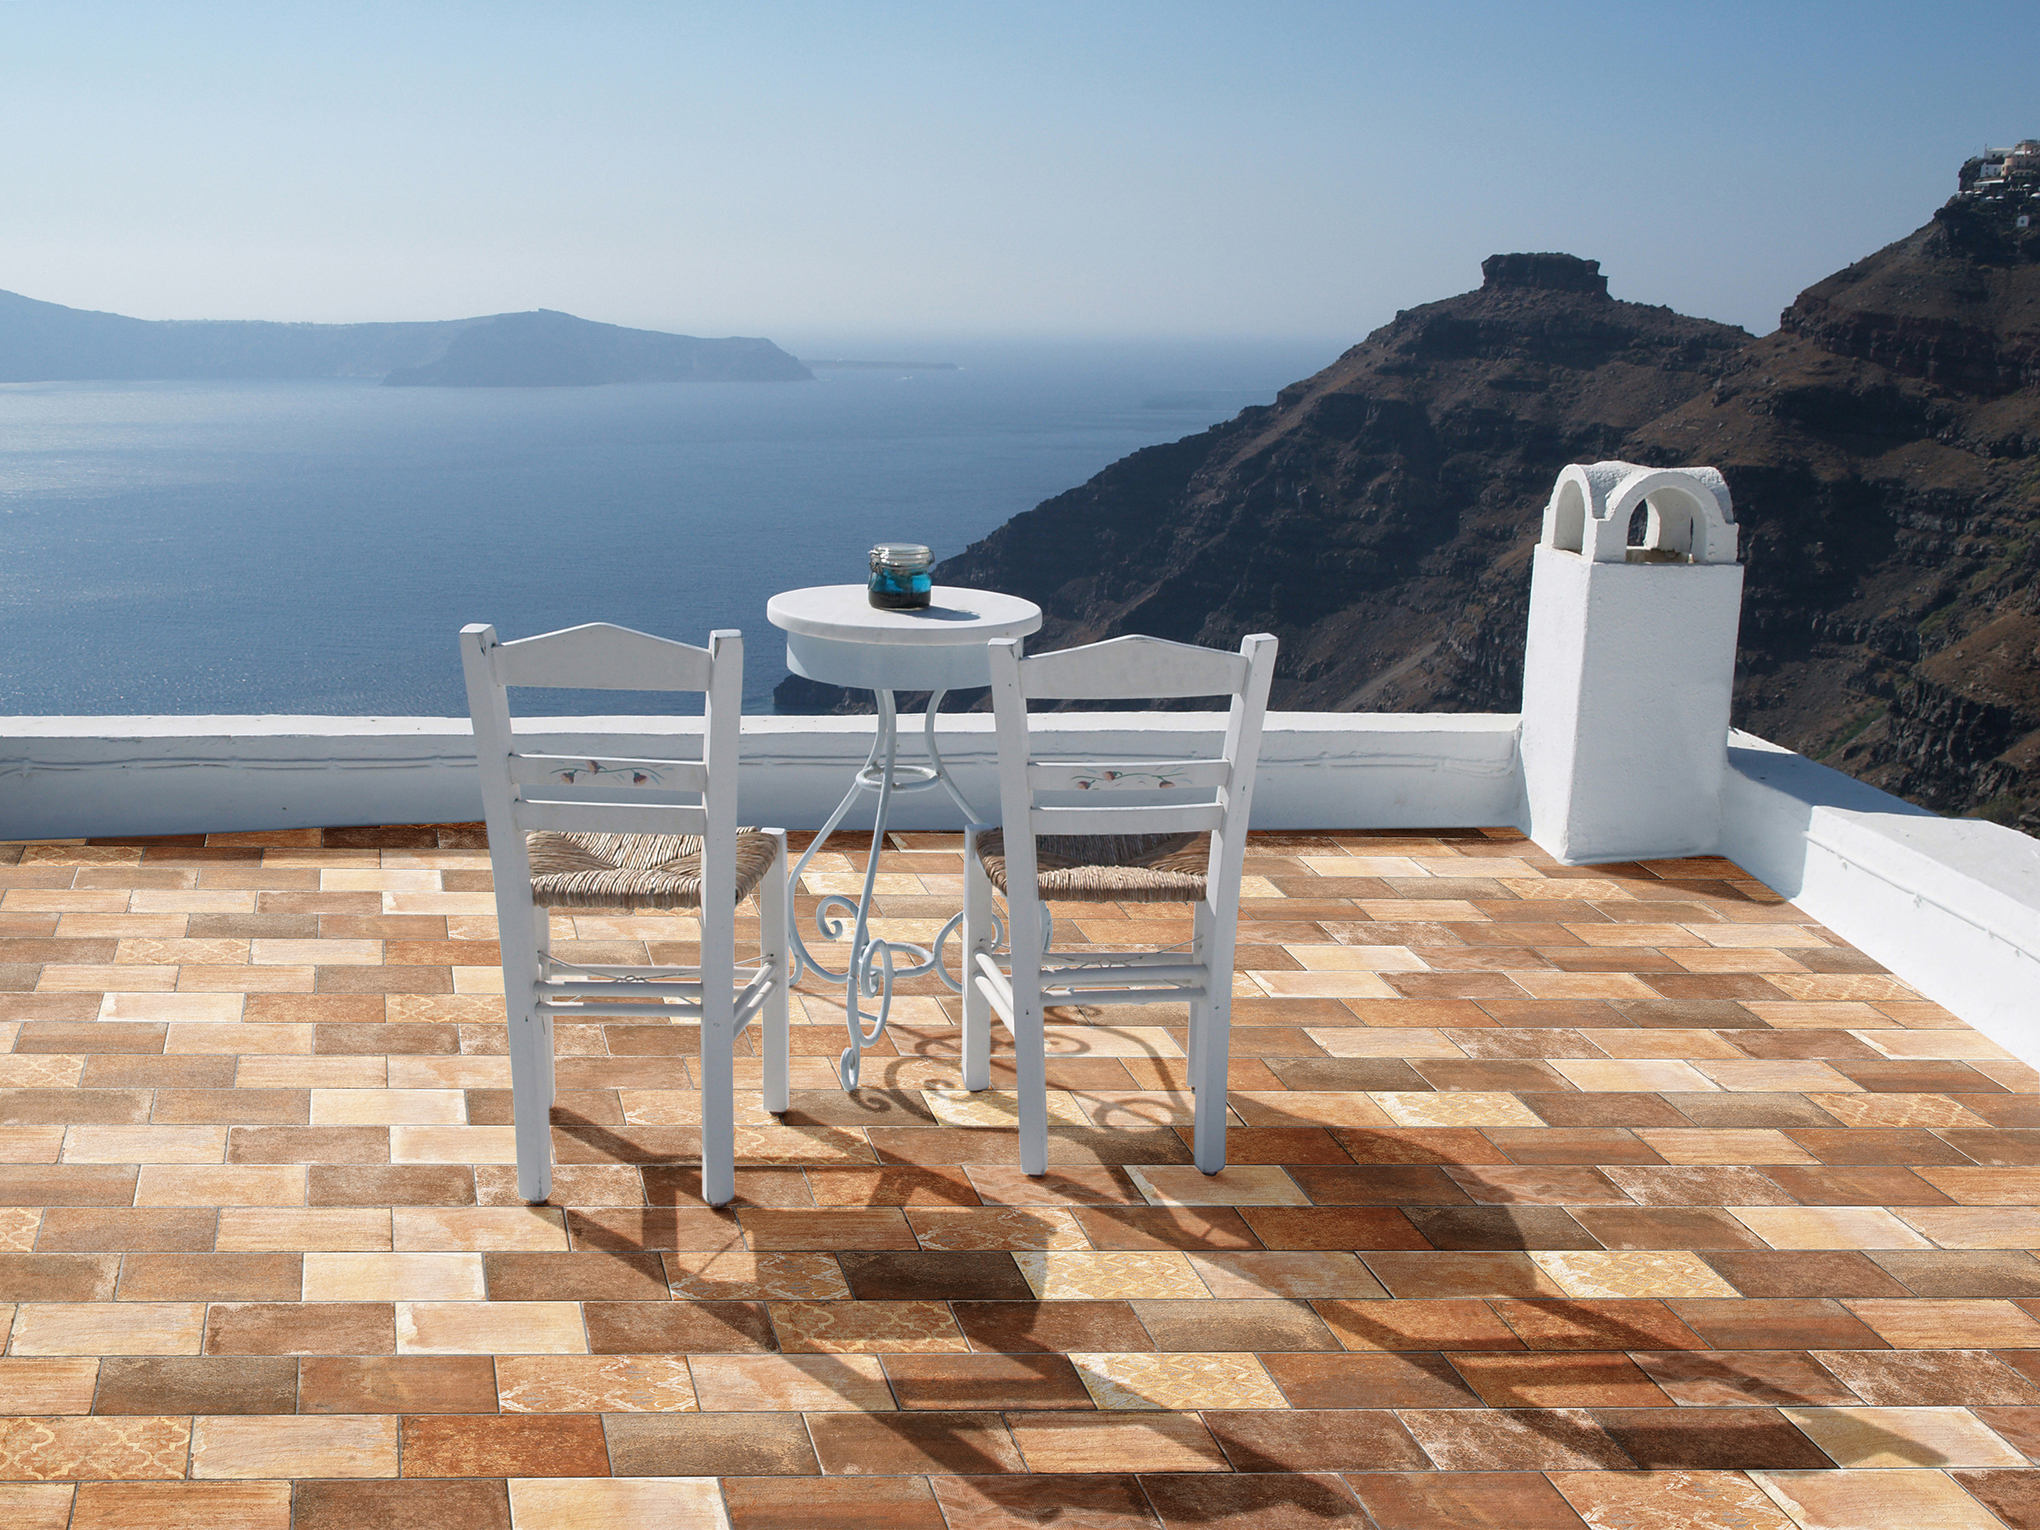 White Table on terrace overlooking the mediterranean sea